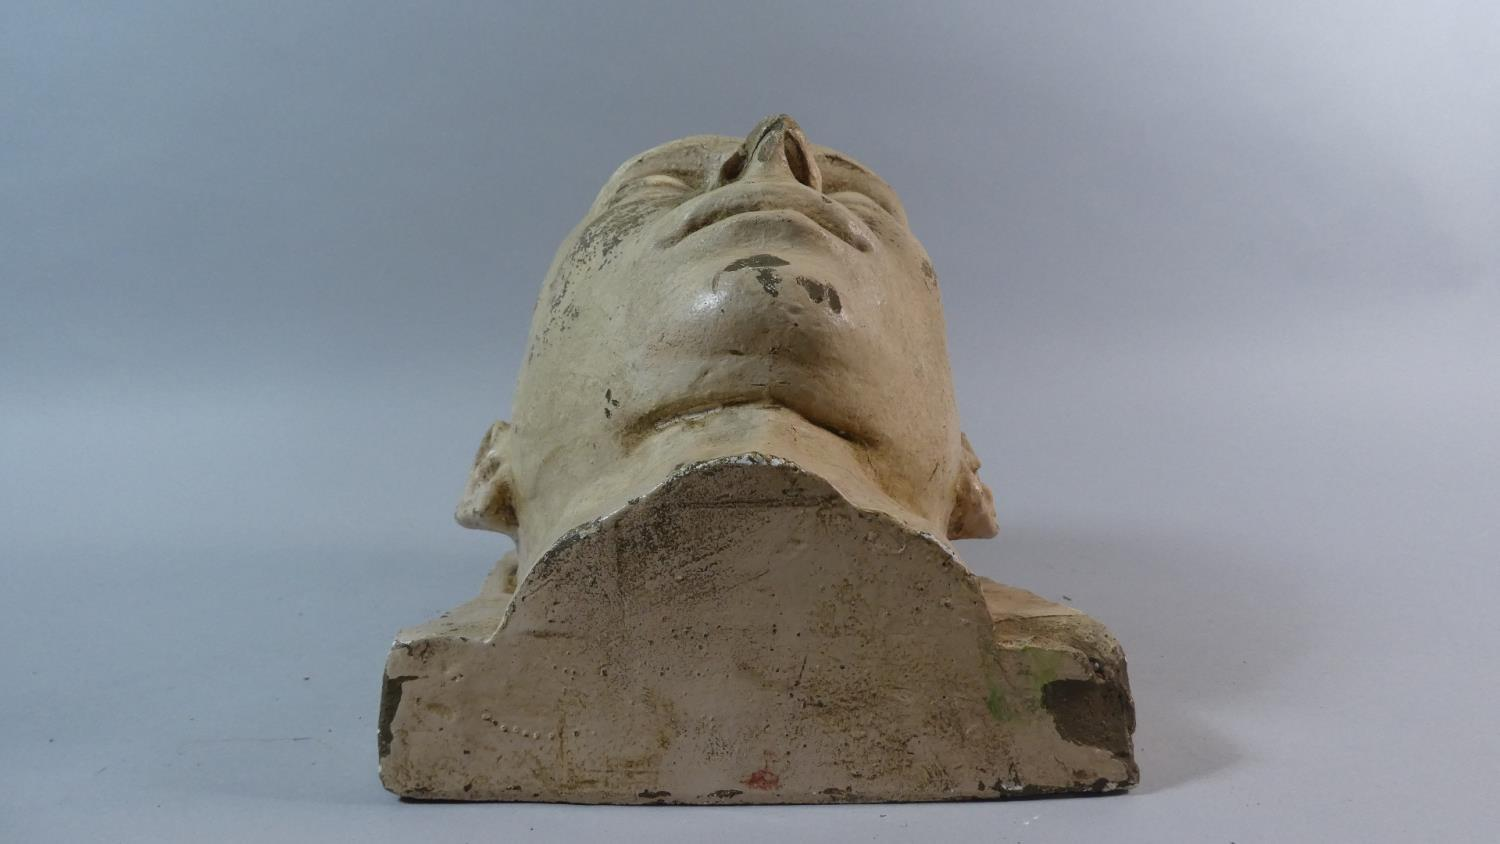 A 19th Century Plaster Death Mask of a Shaven Headed Man, Possibly a Convict or Asylum Inmate. - Image 7 of 7